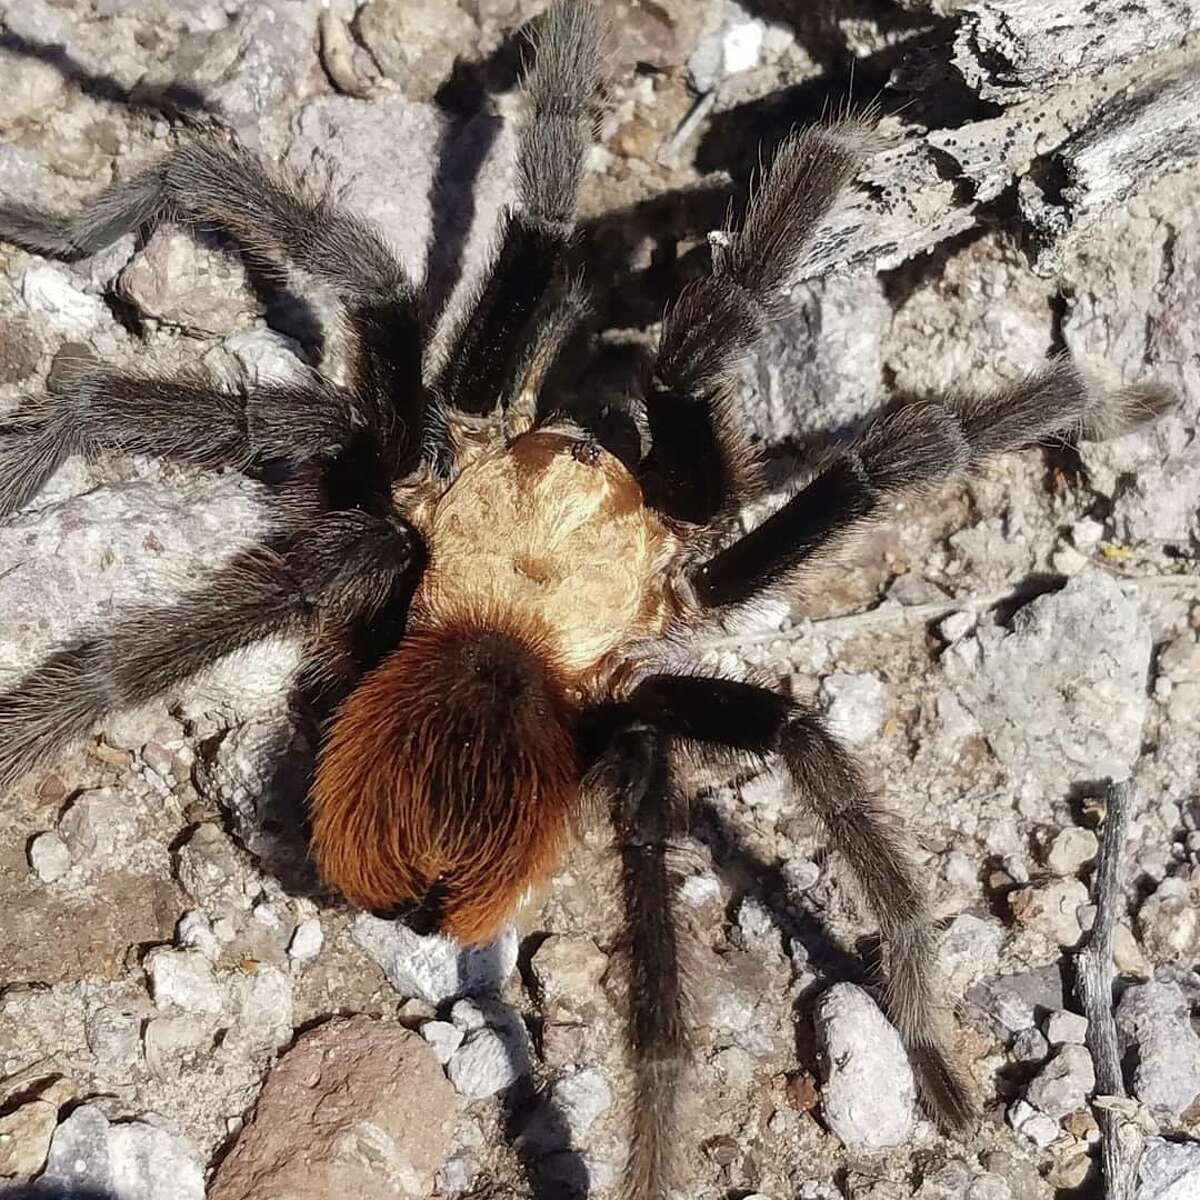 The Texas Parks and Wildlife Department shared a video of a tarantula